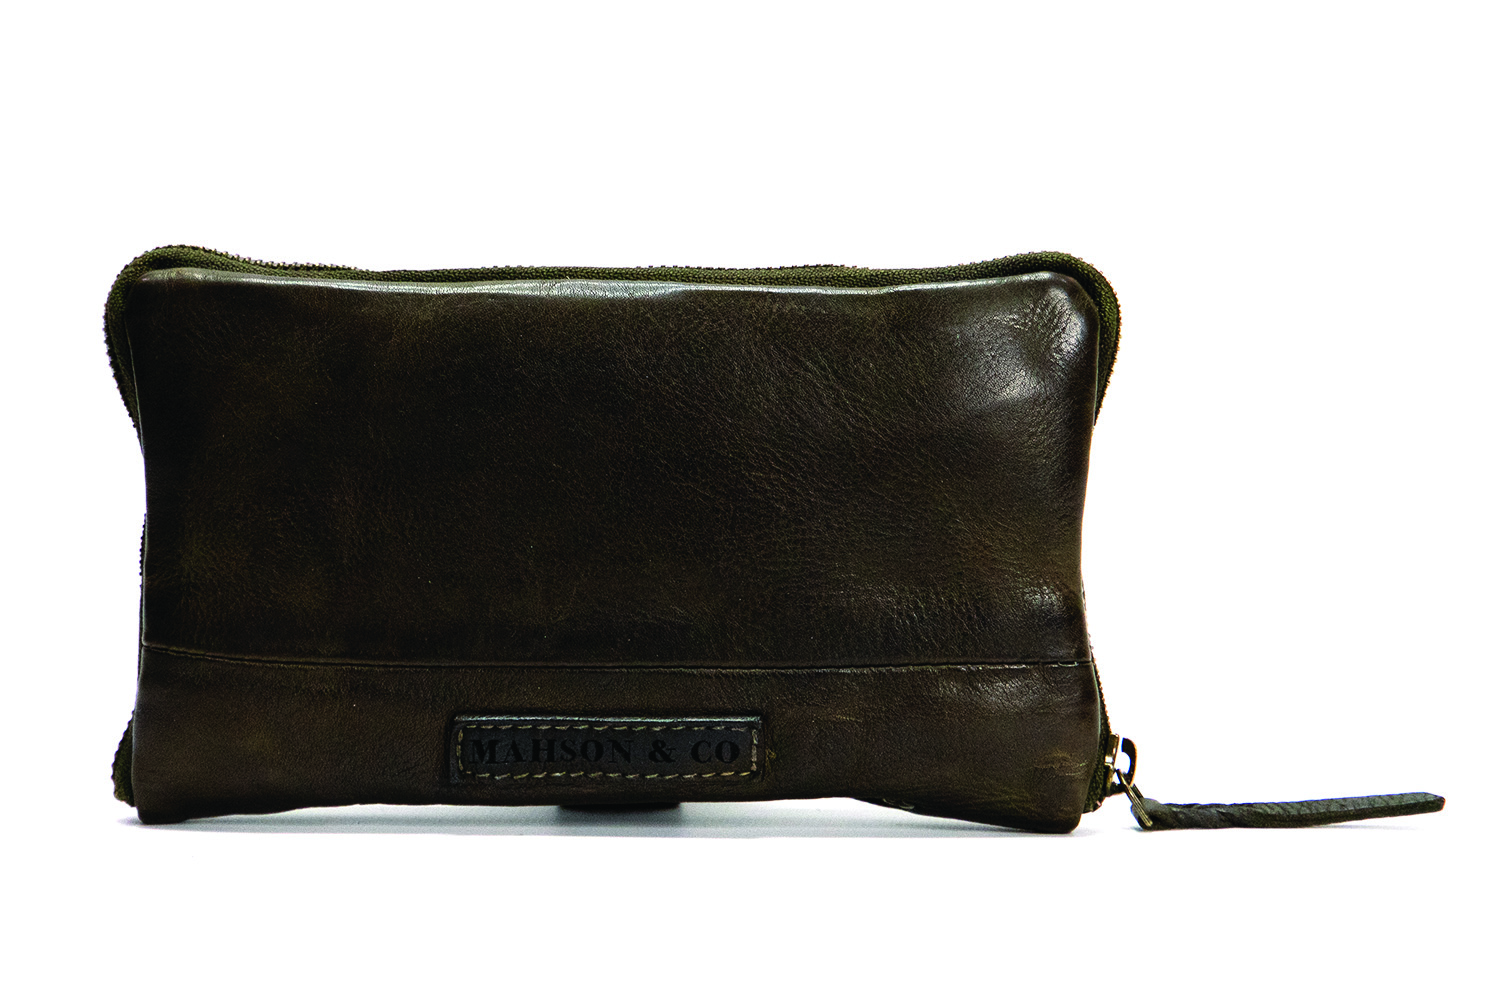 Vintage, retro and boho inspired leather wallet - mud olive